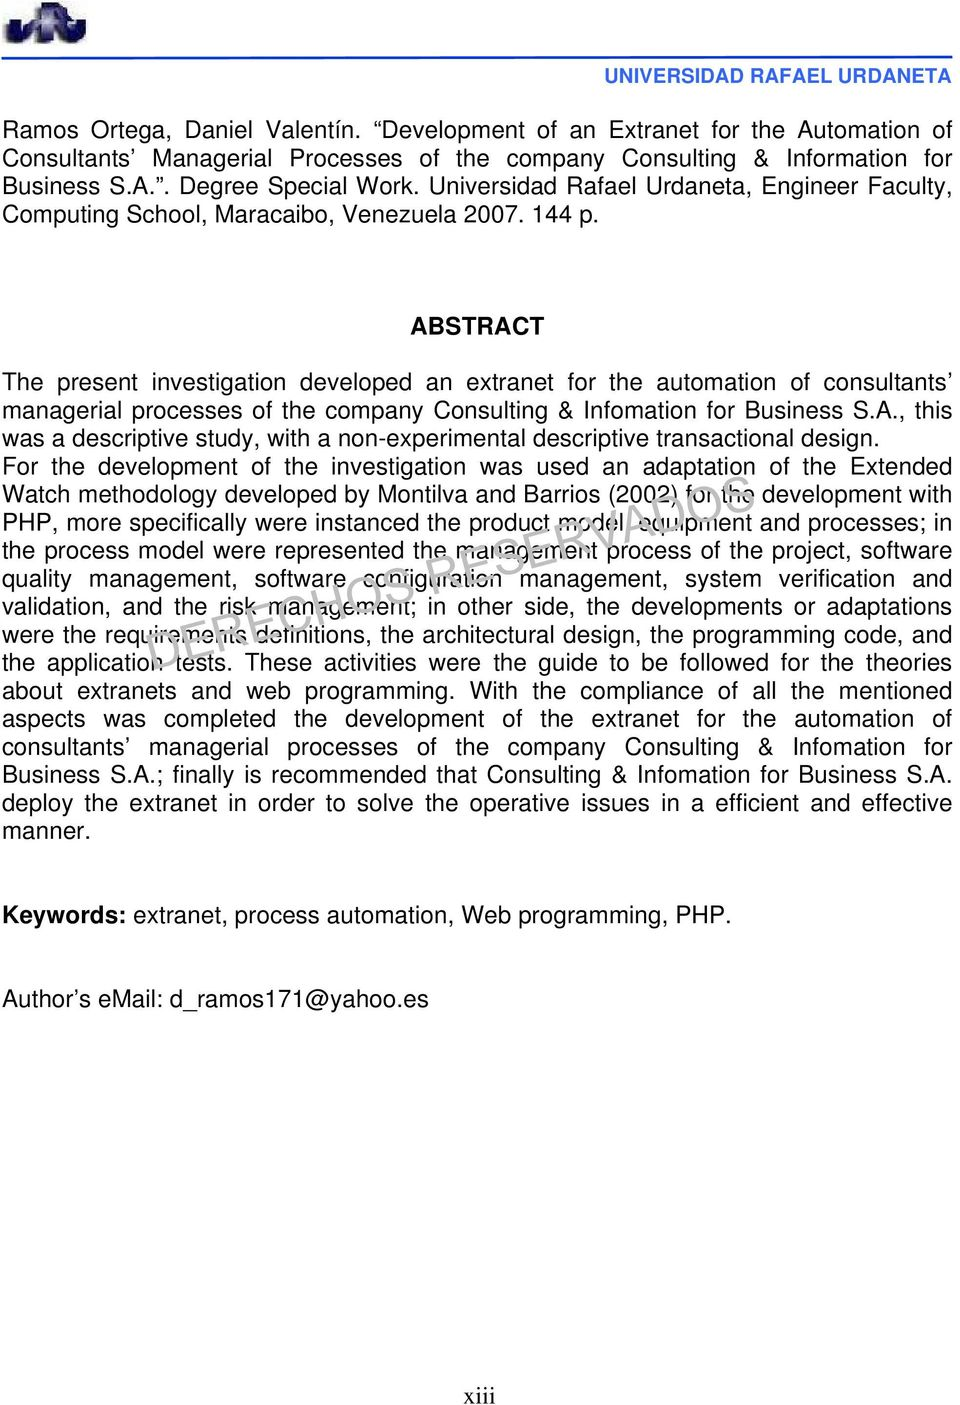 ABSTRACT The present investigation developed an extranet for the automation of consultants managerial processes of the company Consulting & Infomation for Business S.A., this was a descriptive study, with a non-experimental descriptive transactional design.